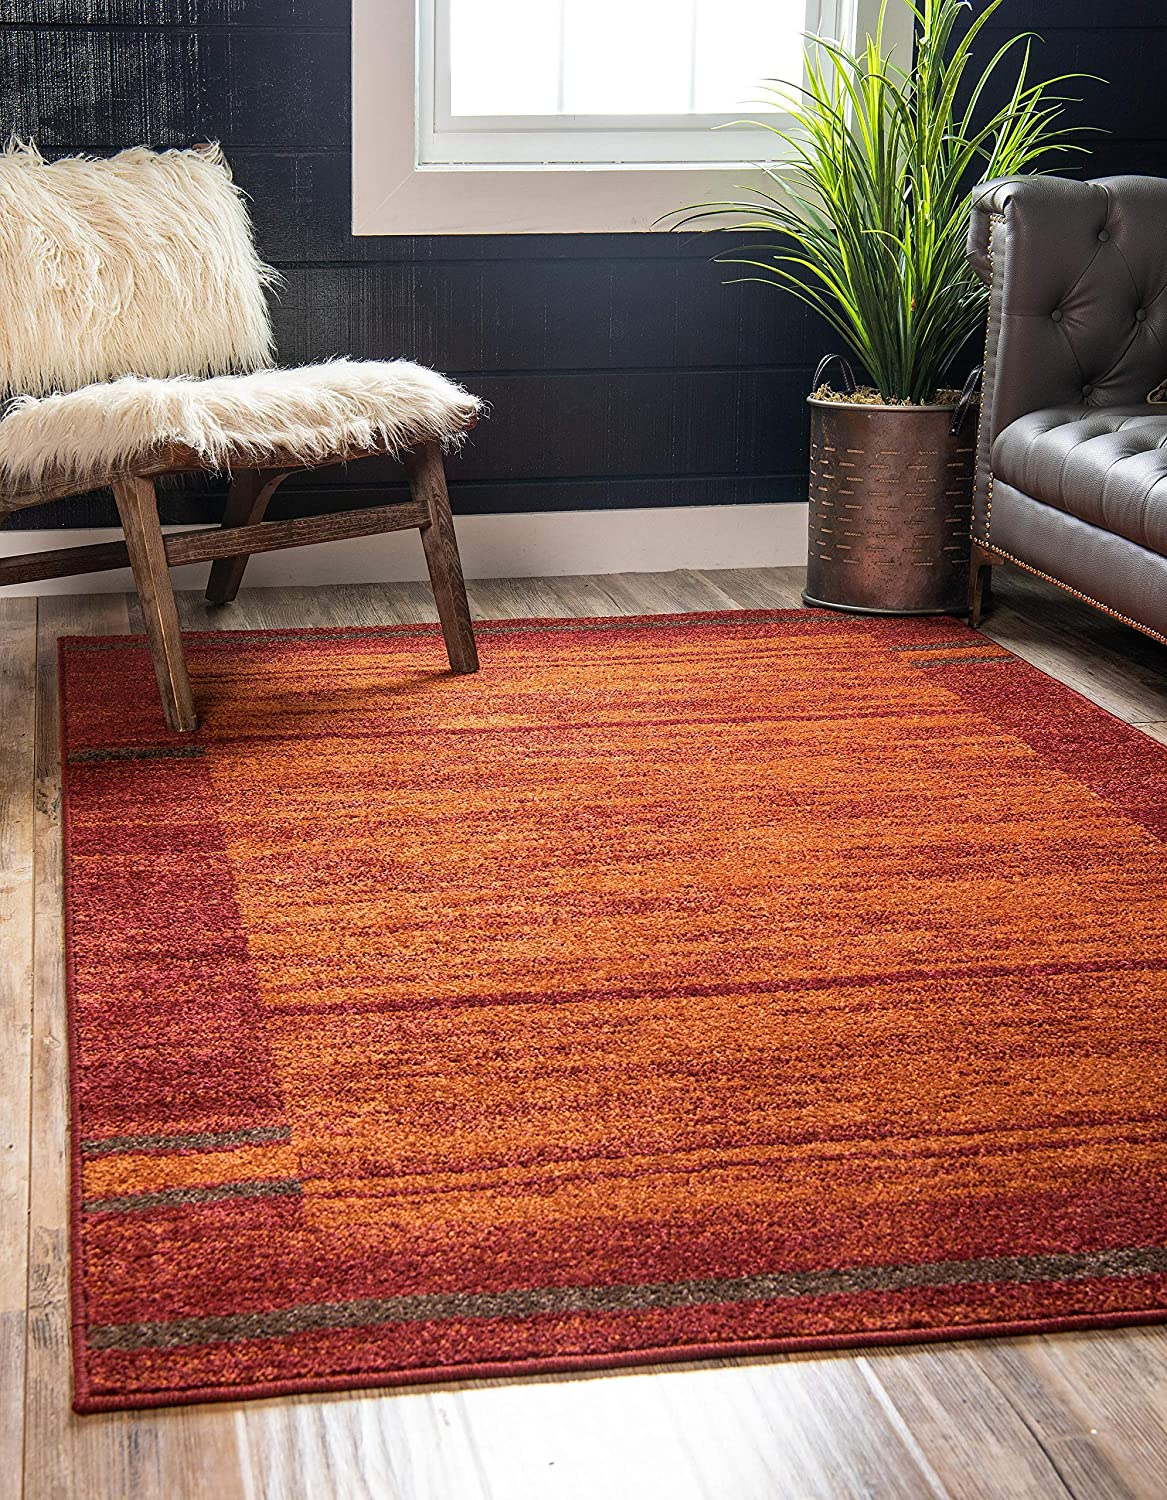 Amazon Com Unique Loom Autumn Collection Border Casual Rustic Warm Toned Terracotta Area Rug 9 0 X 12 0 Furniture Decor